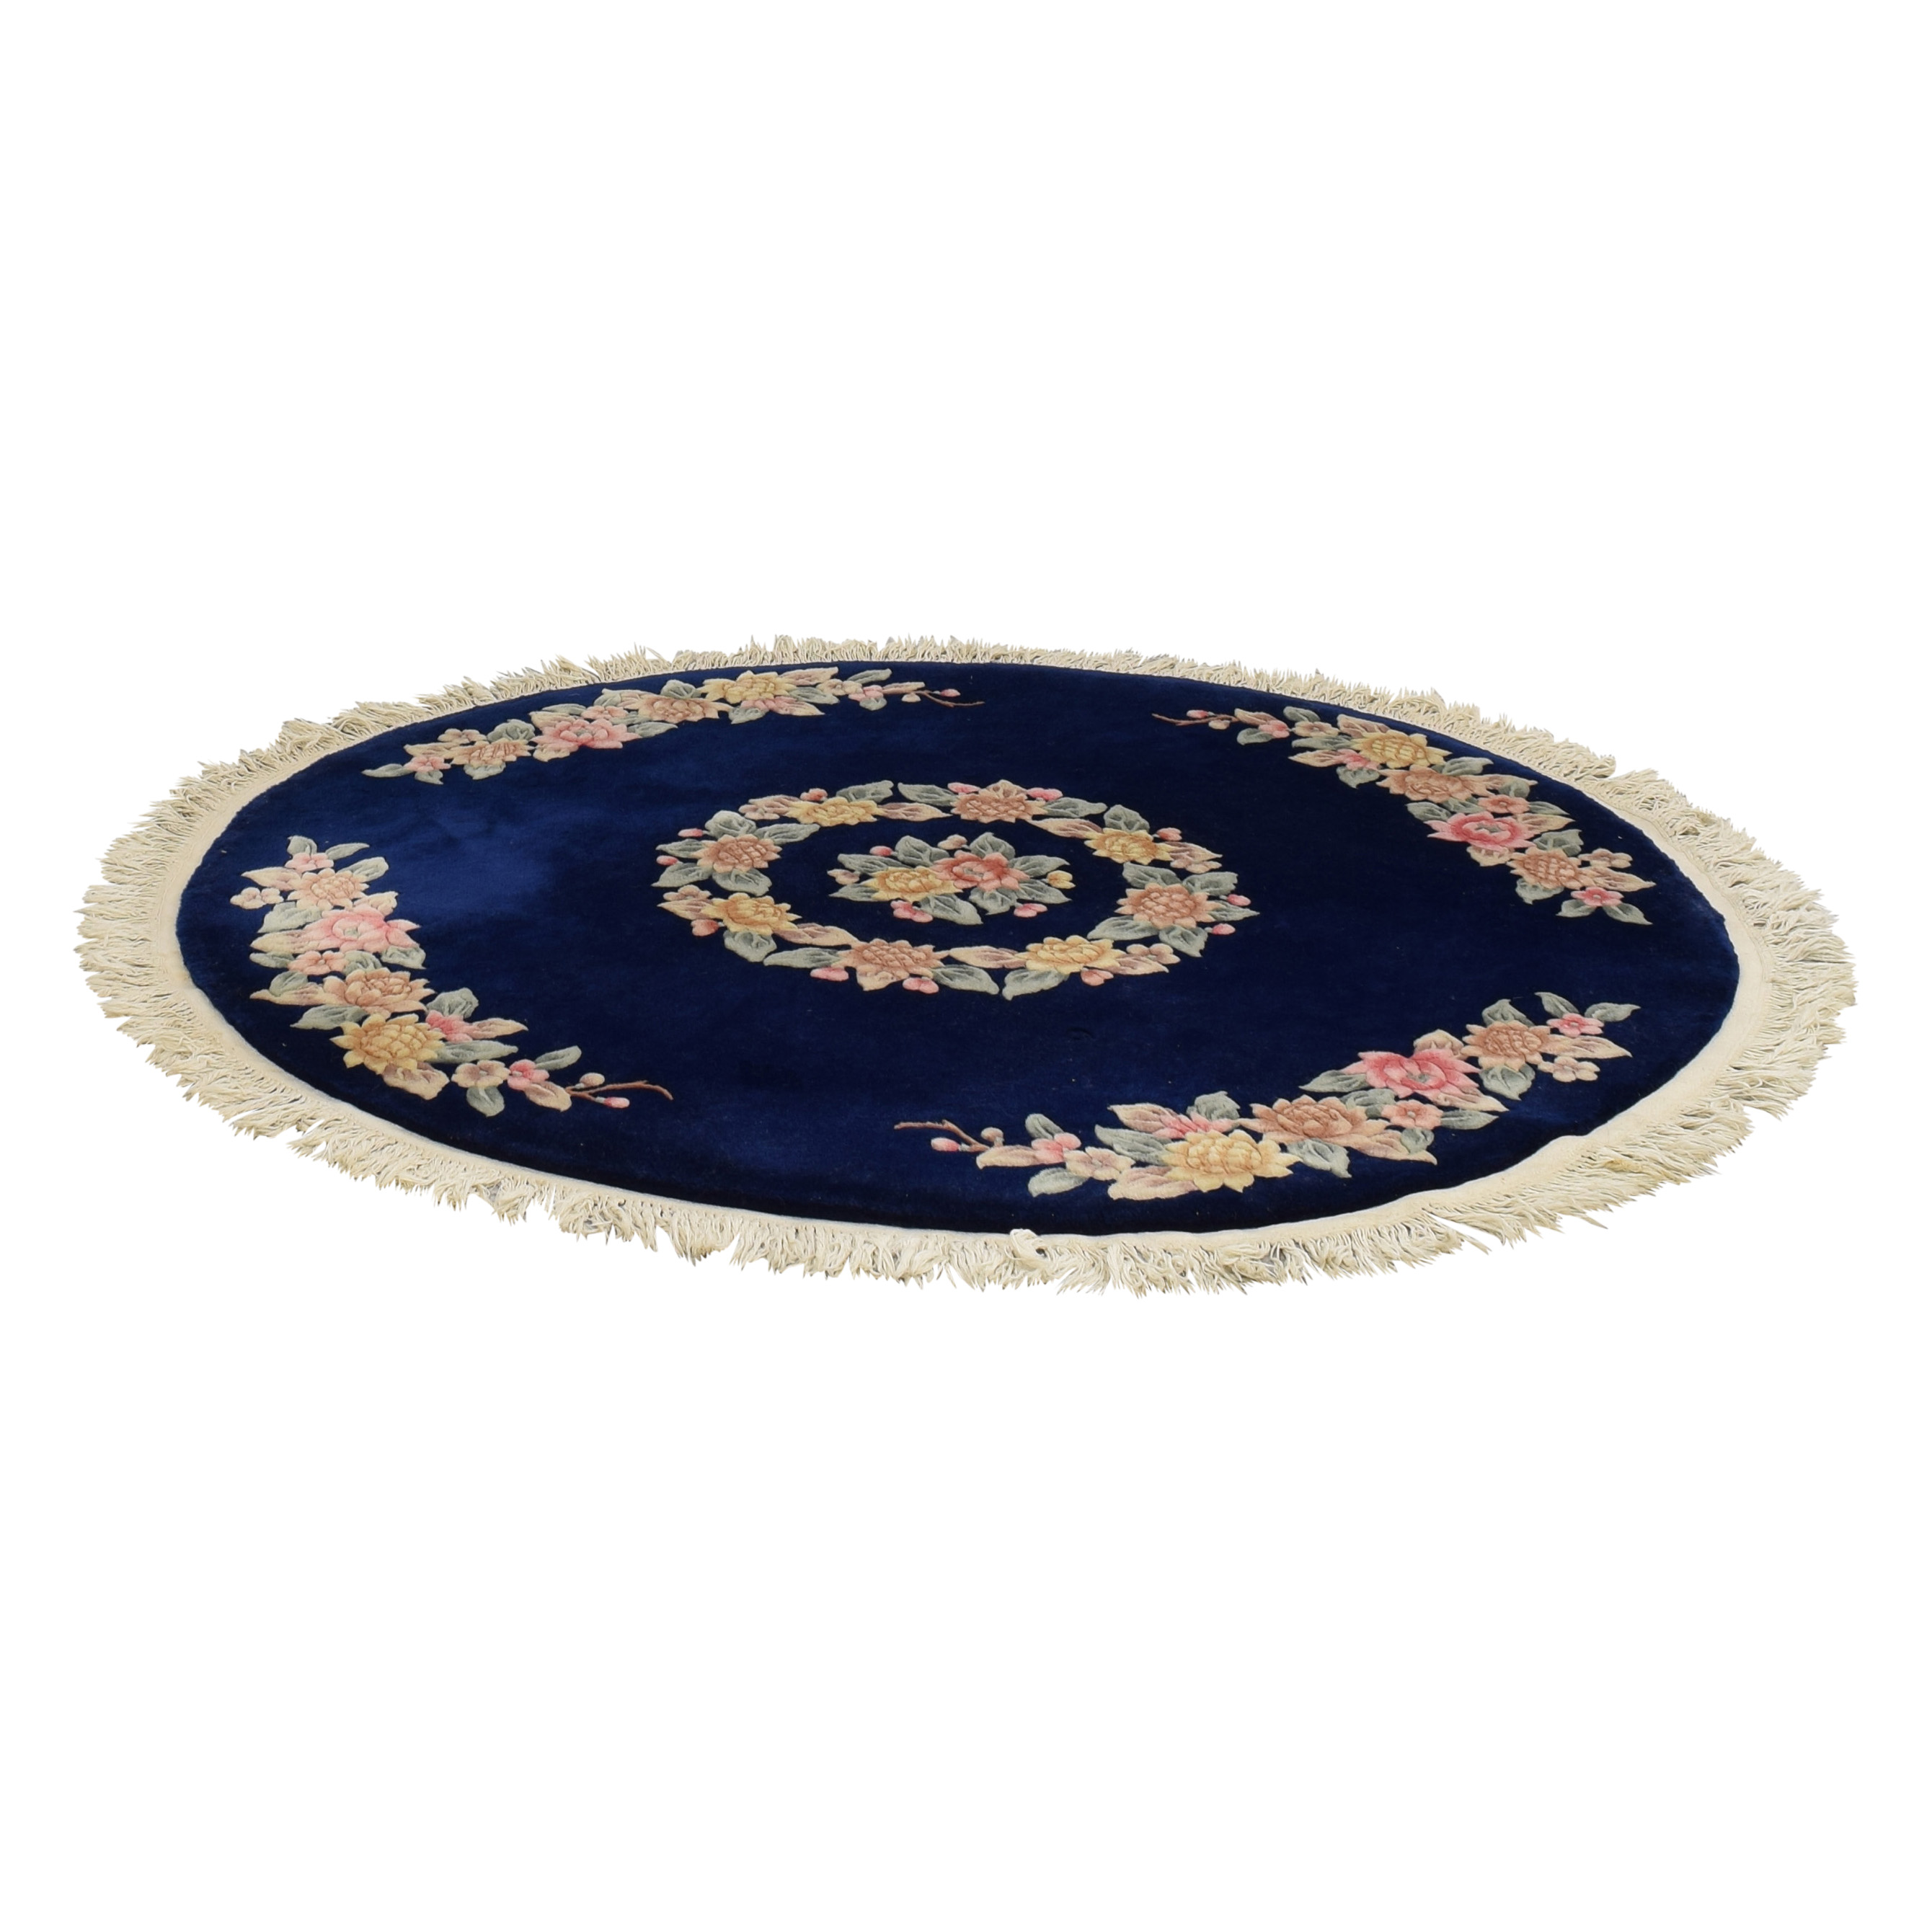 Circular Rug with Flower Design used